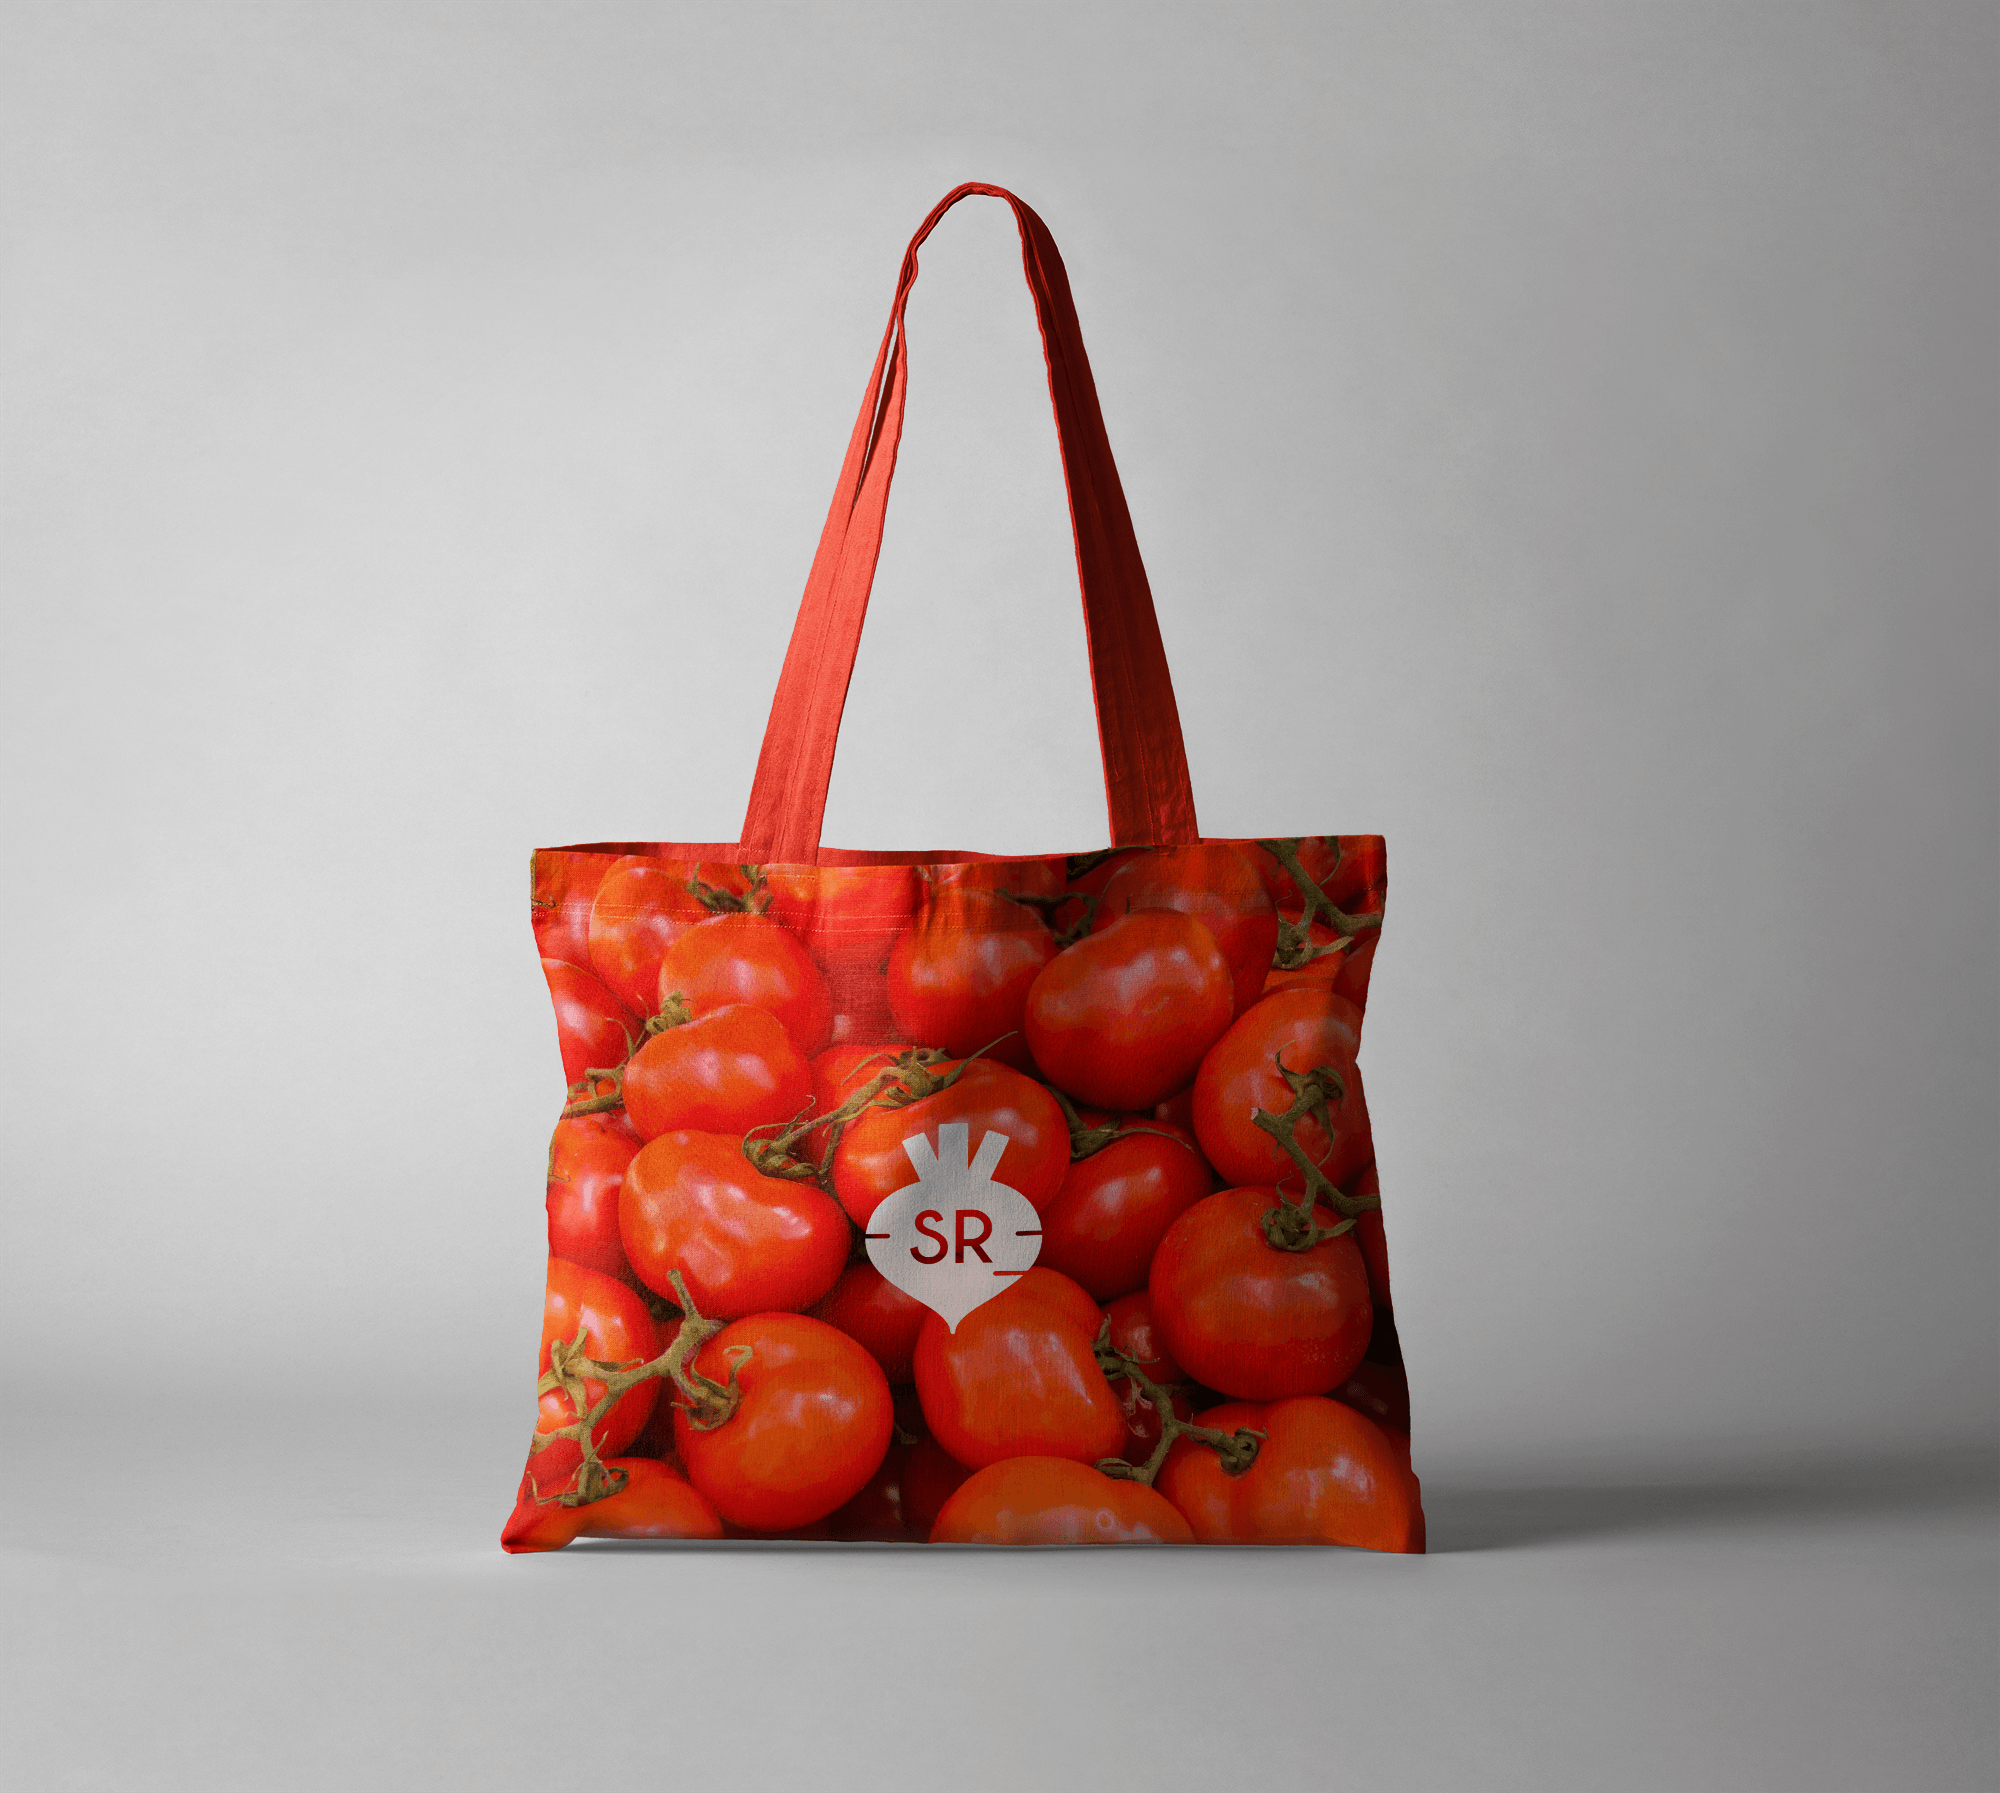 ToteBag-sunroots-tomatoes-yoenpaperland-compressor